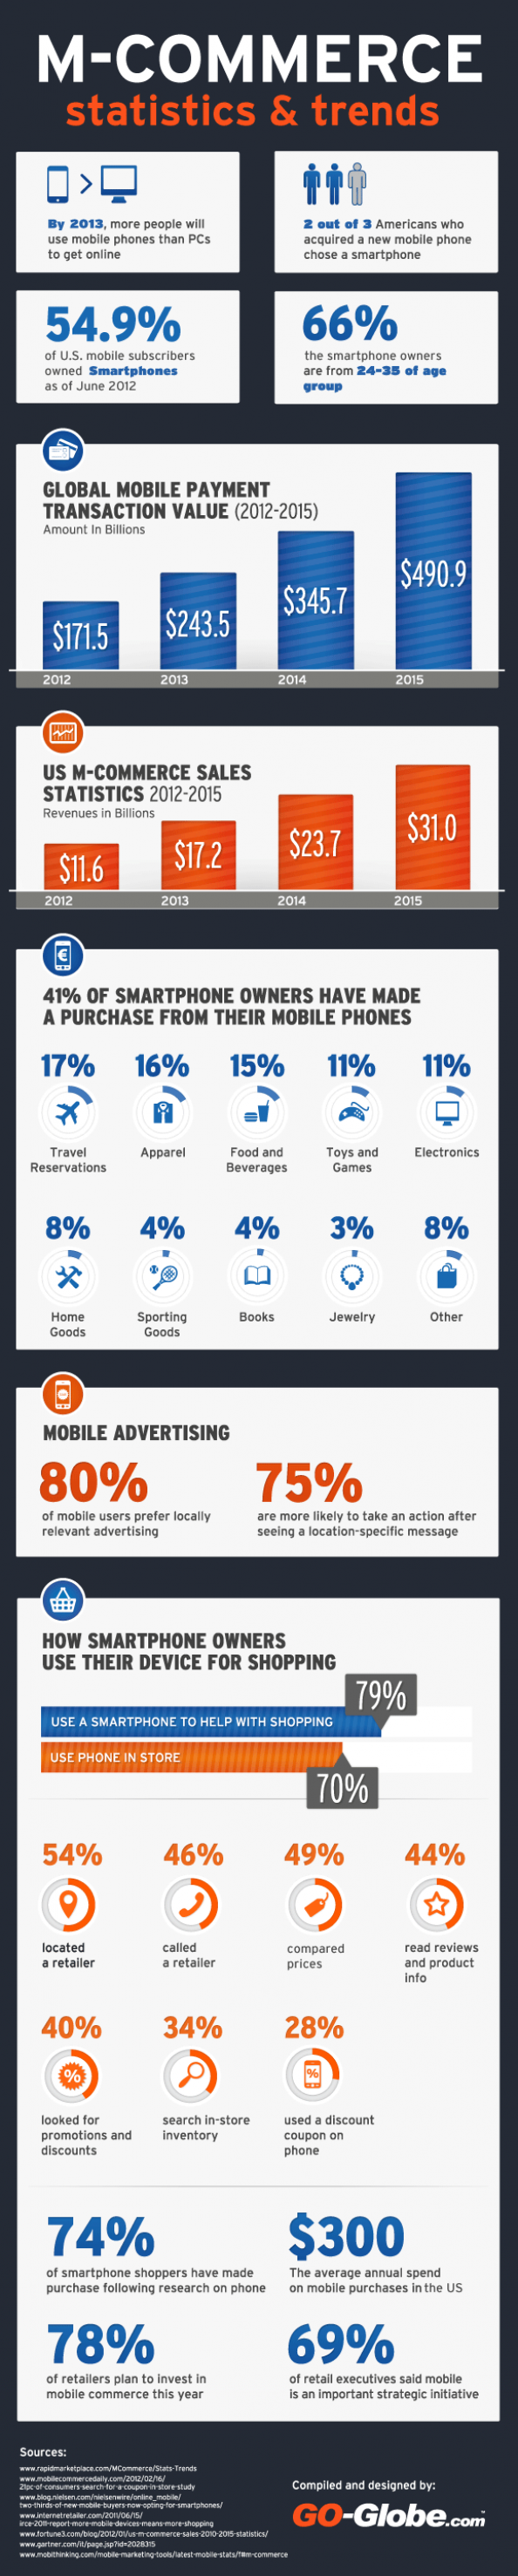 Mobile Commerce Statistics and Trends | Visual.ly